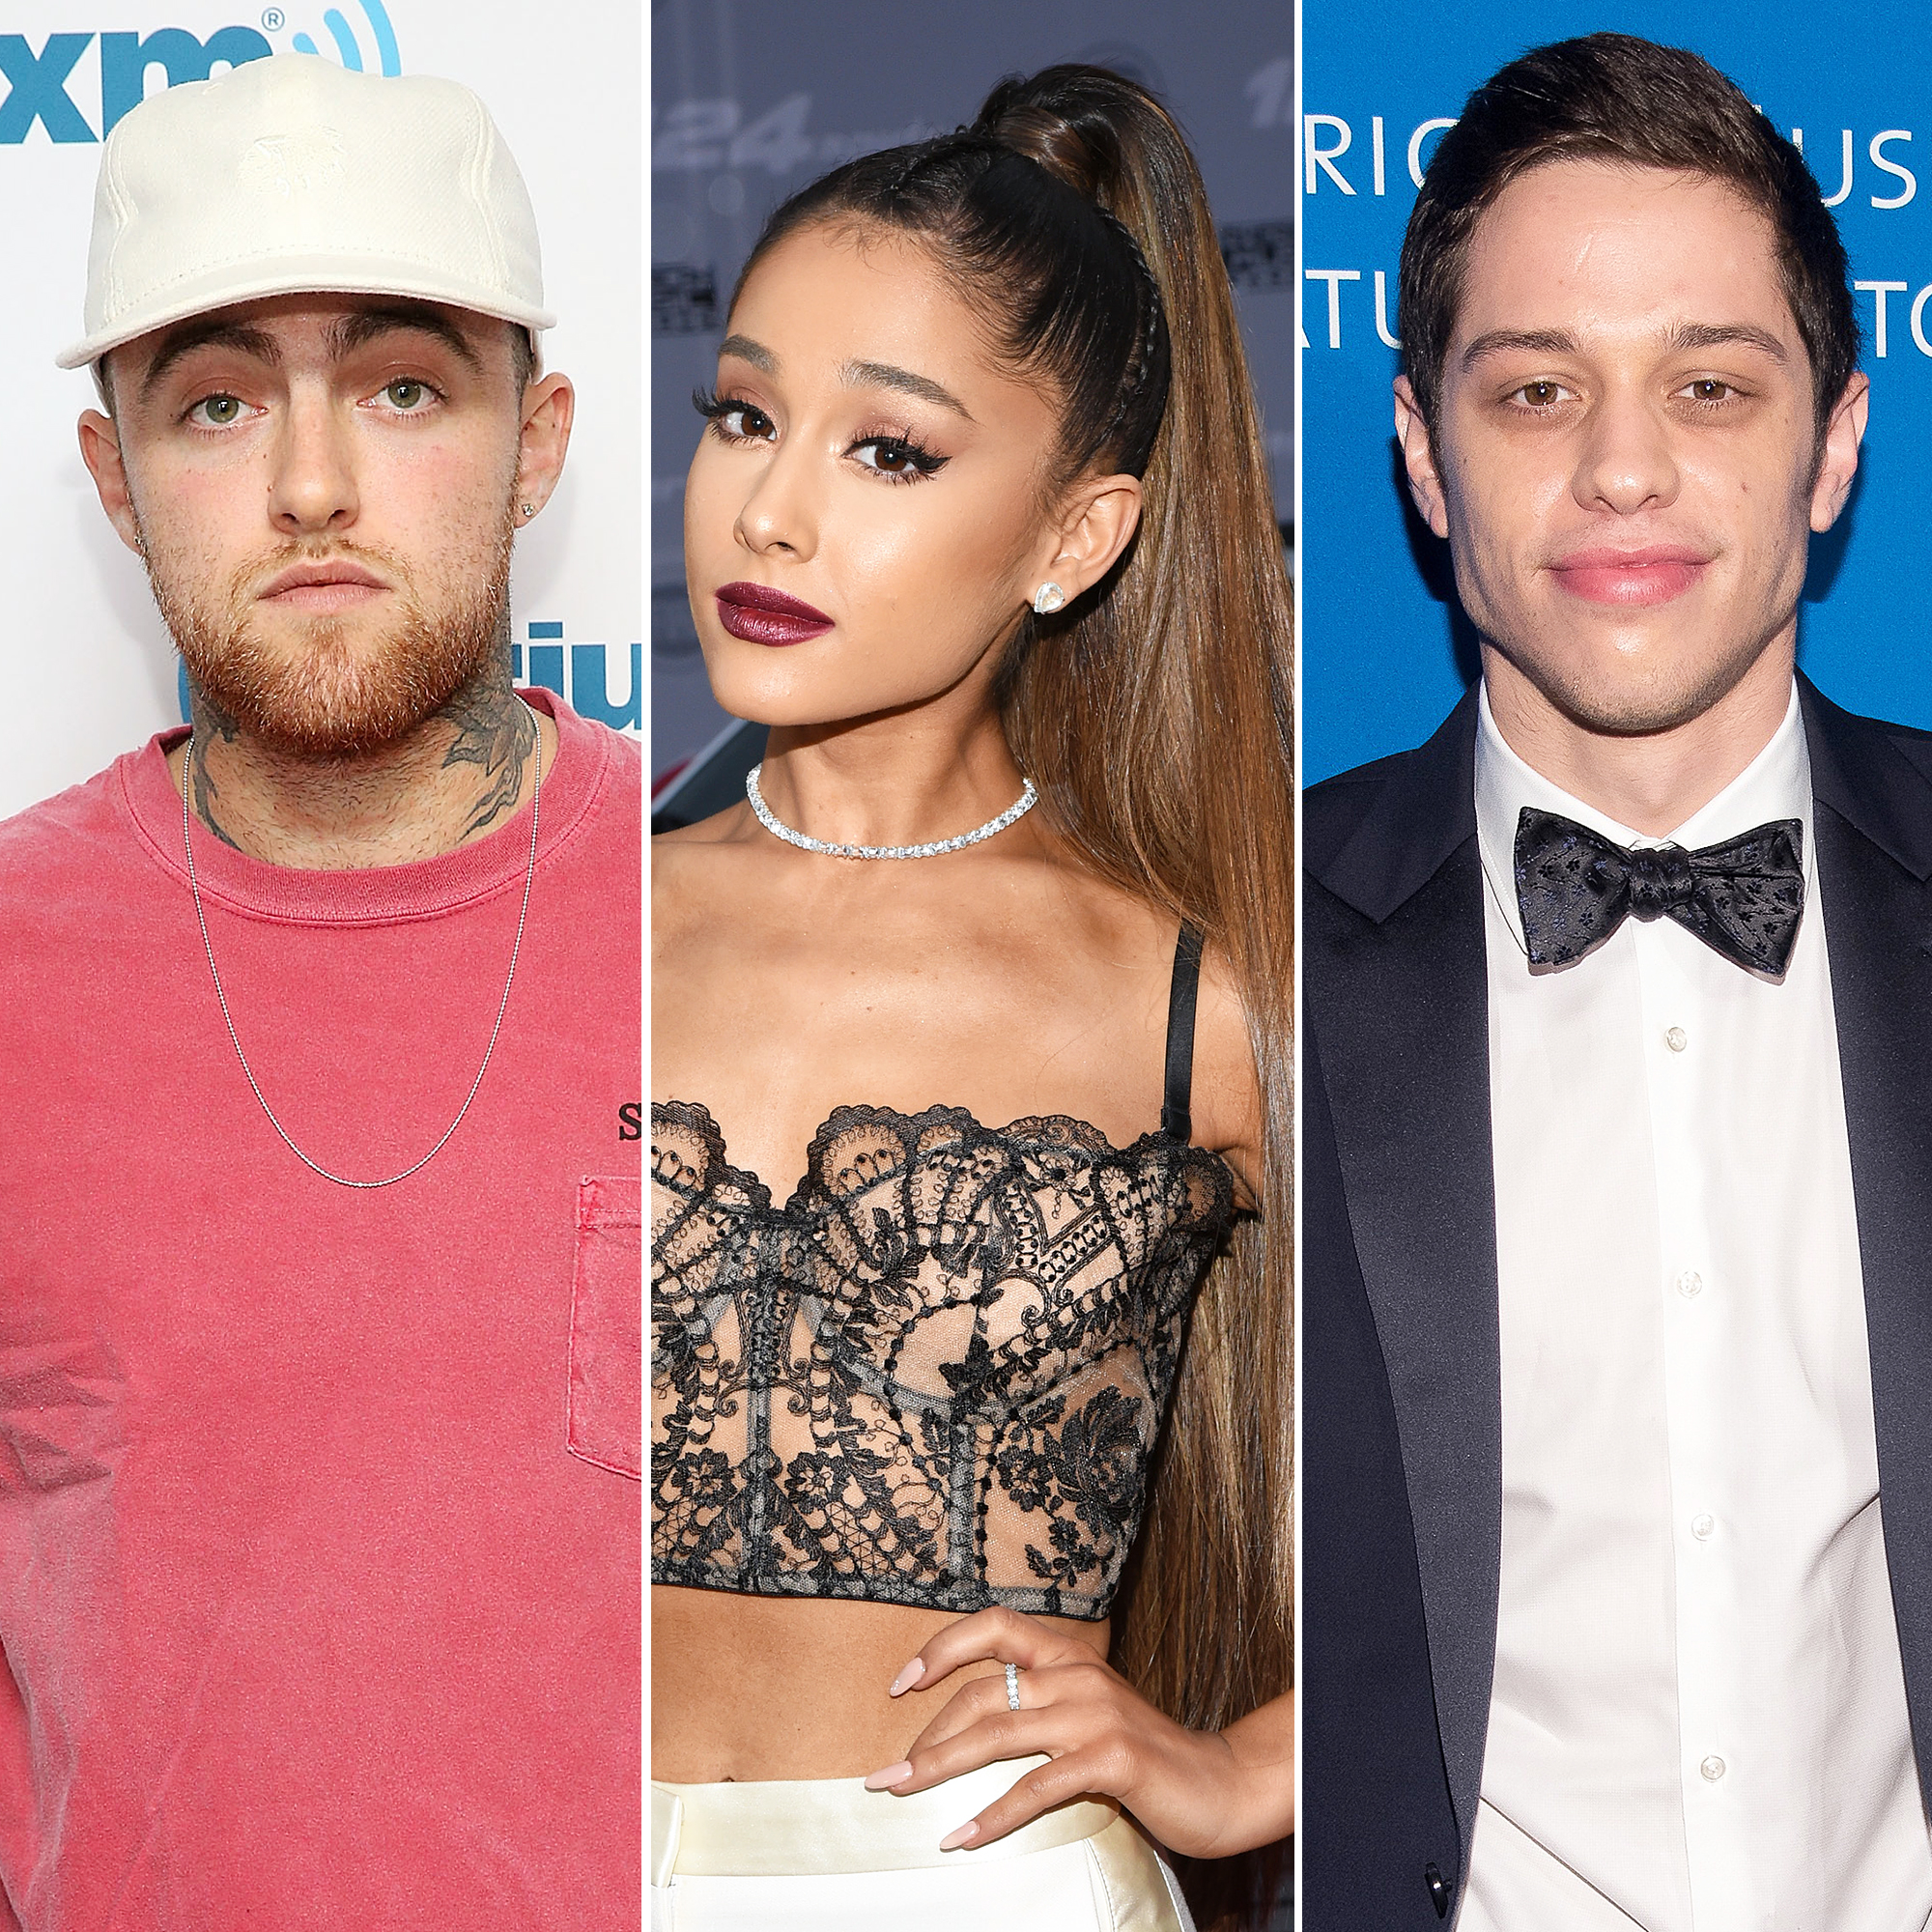 Ariana Grande Calls Mac Miller Relationship 'Toxic' - Rap-Up